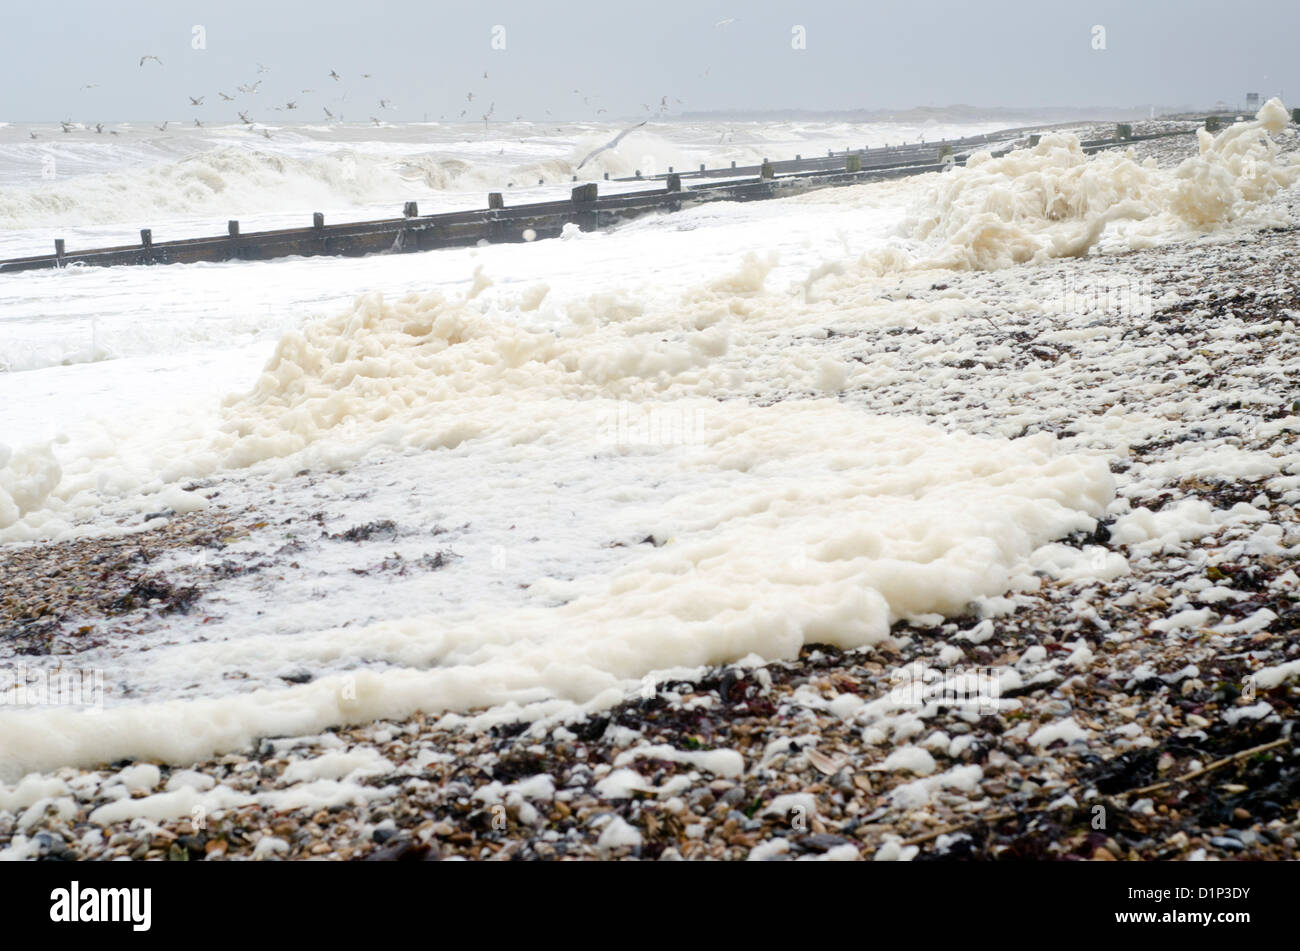 Spume (foam, froth) on the beach after stormy weather. - Stock Image